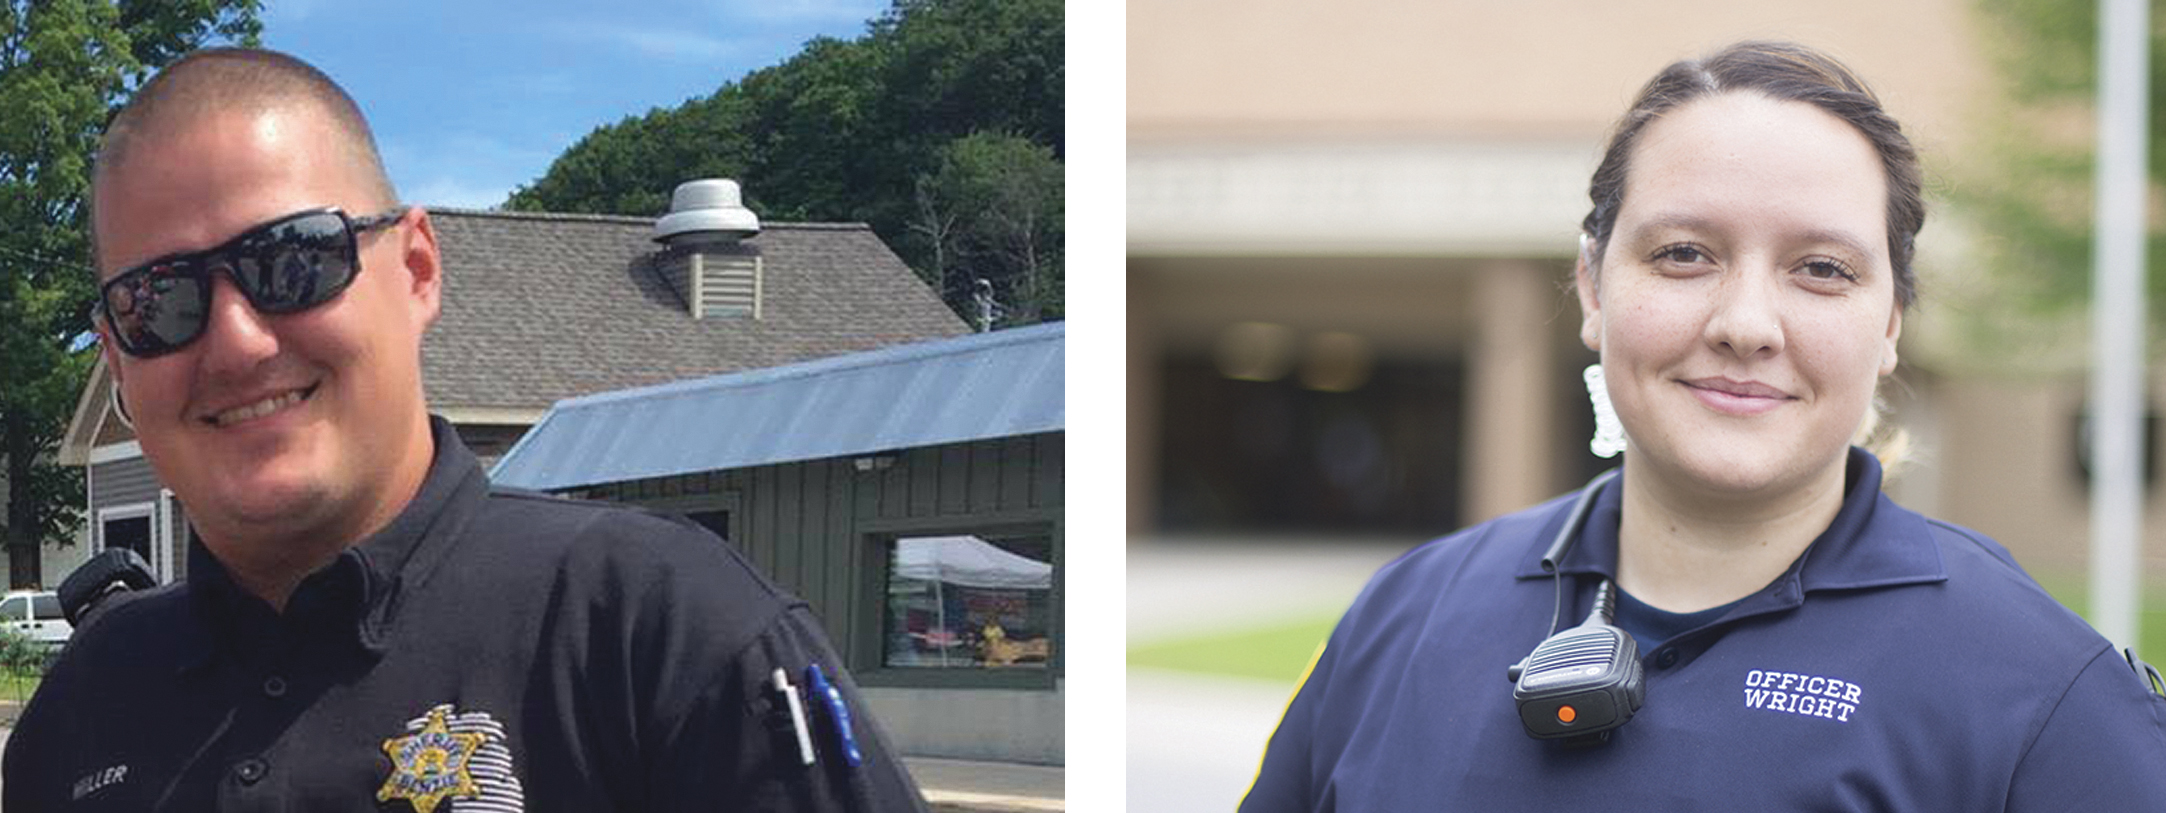 Q&A: Geoff Miller and Tiffany Wright Are School Resource Officers (SROs) at Benzie and Frankfort Schools